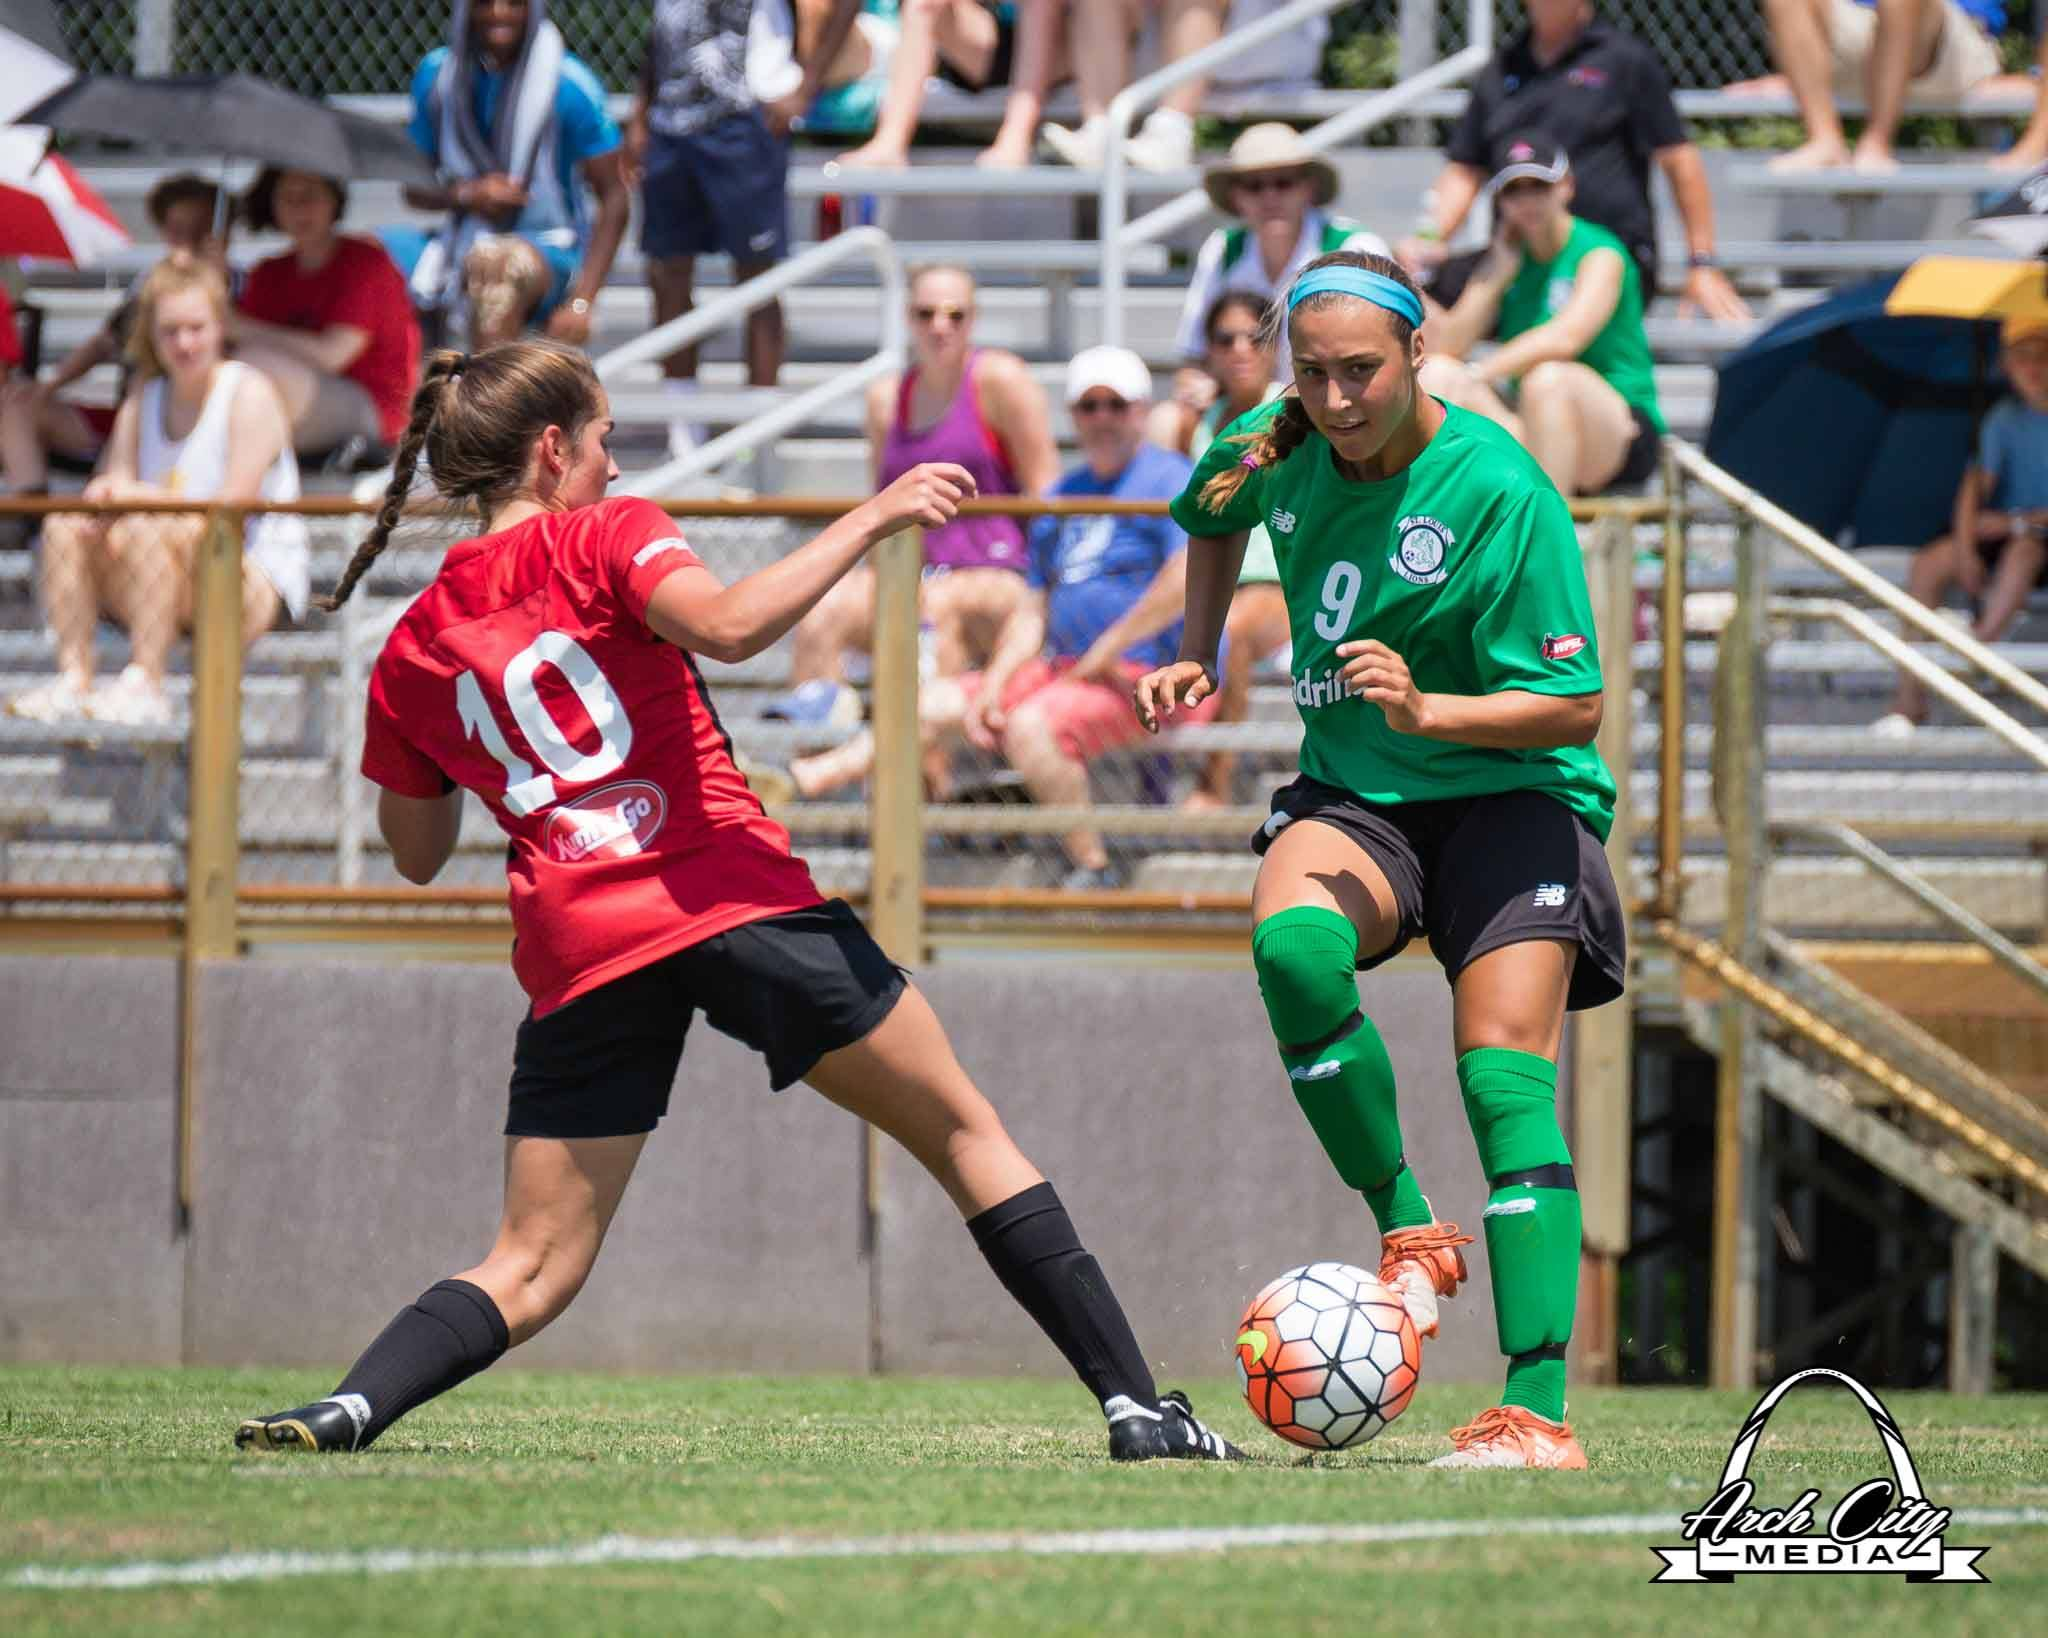 St Louis Lions Wpsl S 24 Hour Sprint Results In Win Four